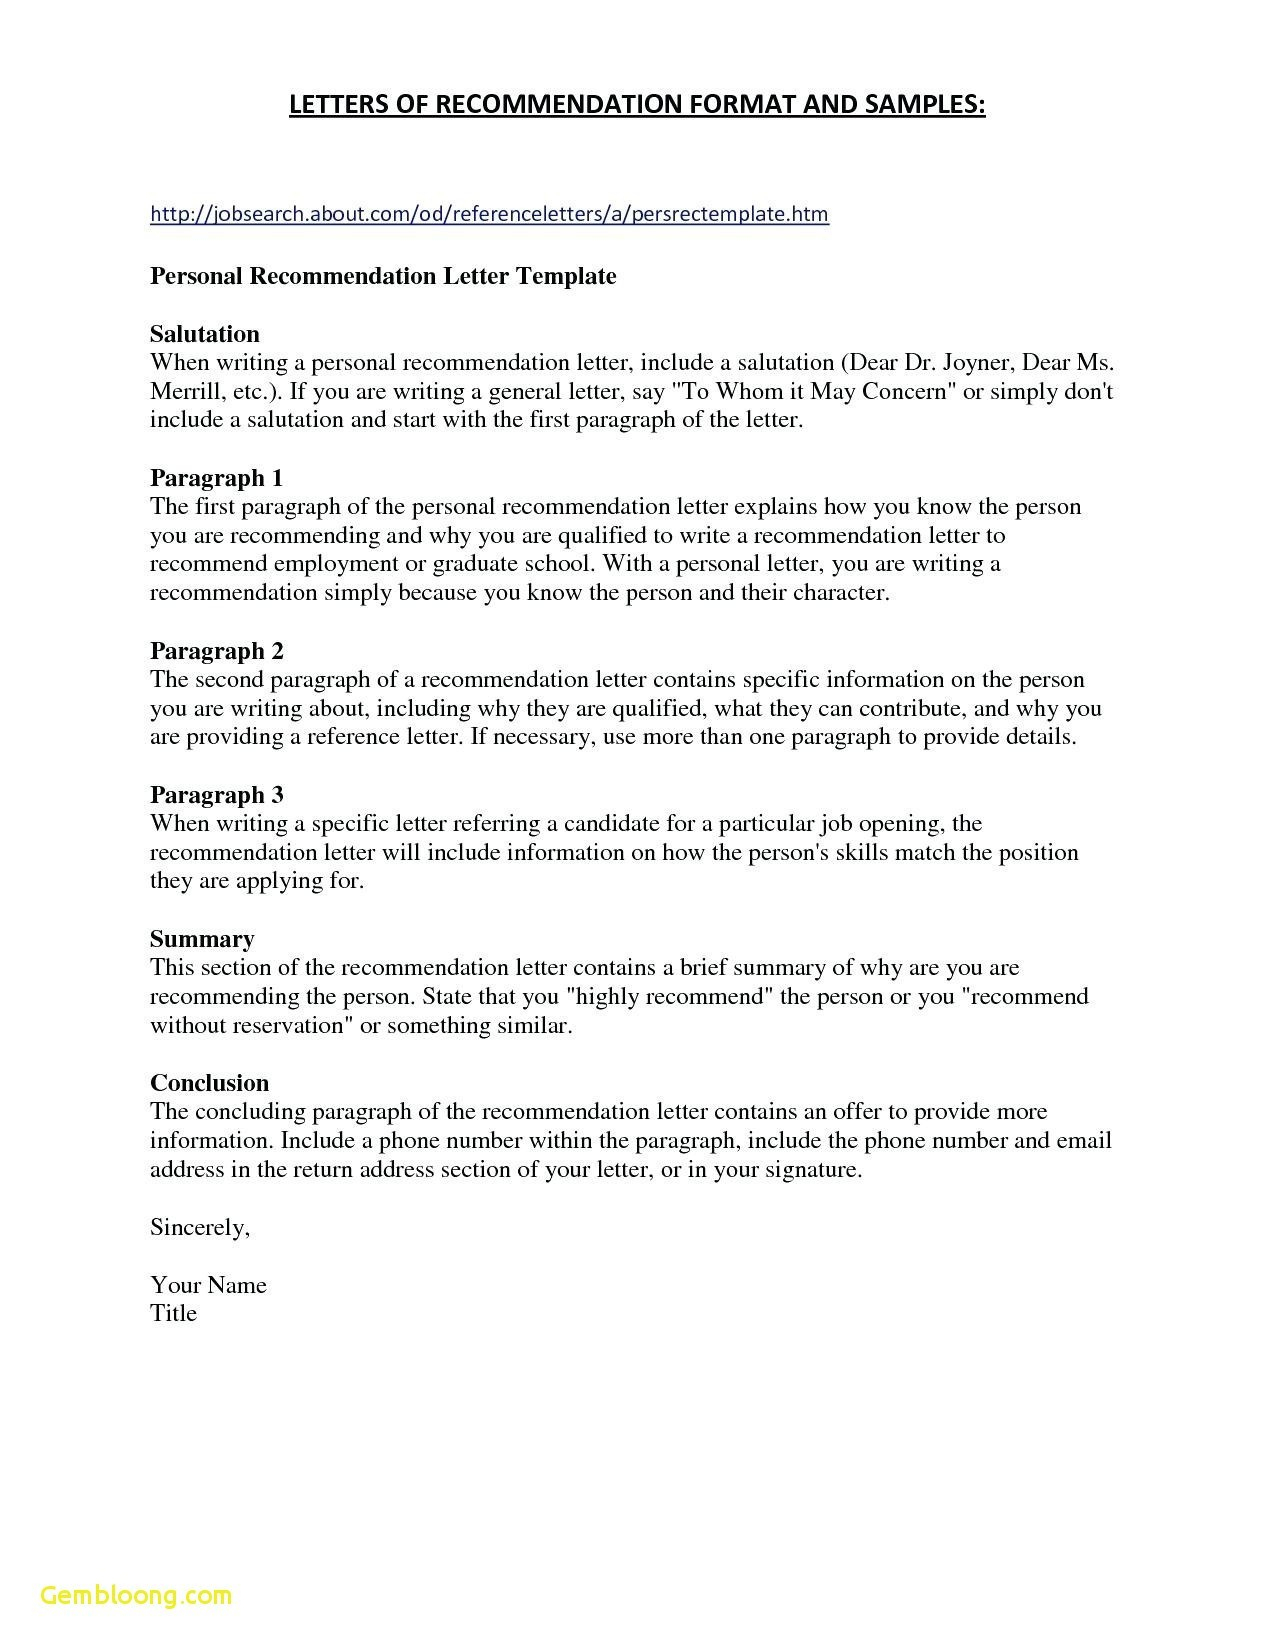 Welcome Back to School Letter Template - School Reference Letter Template Examples